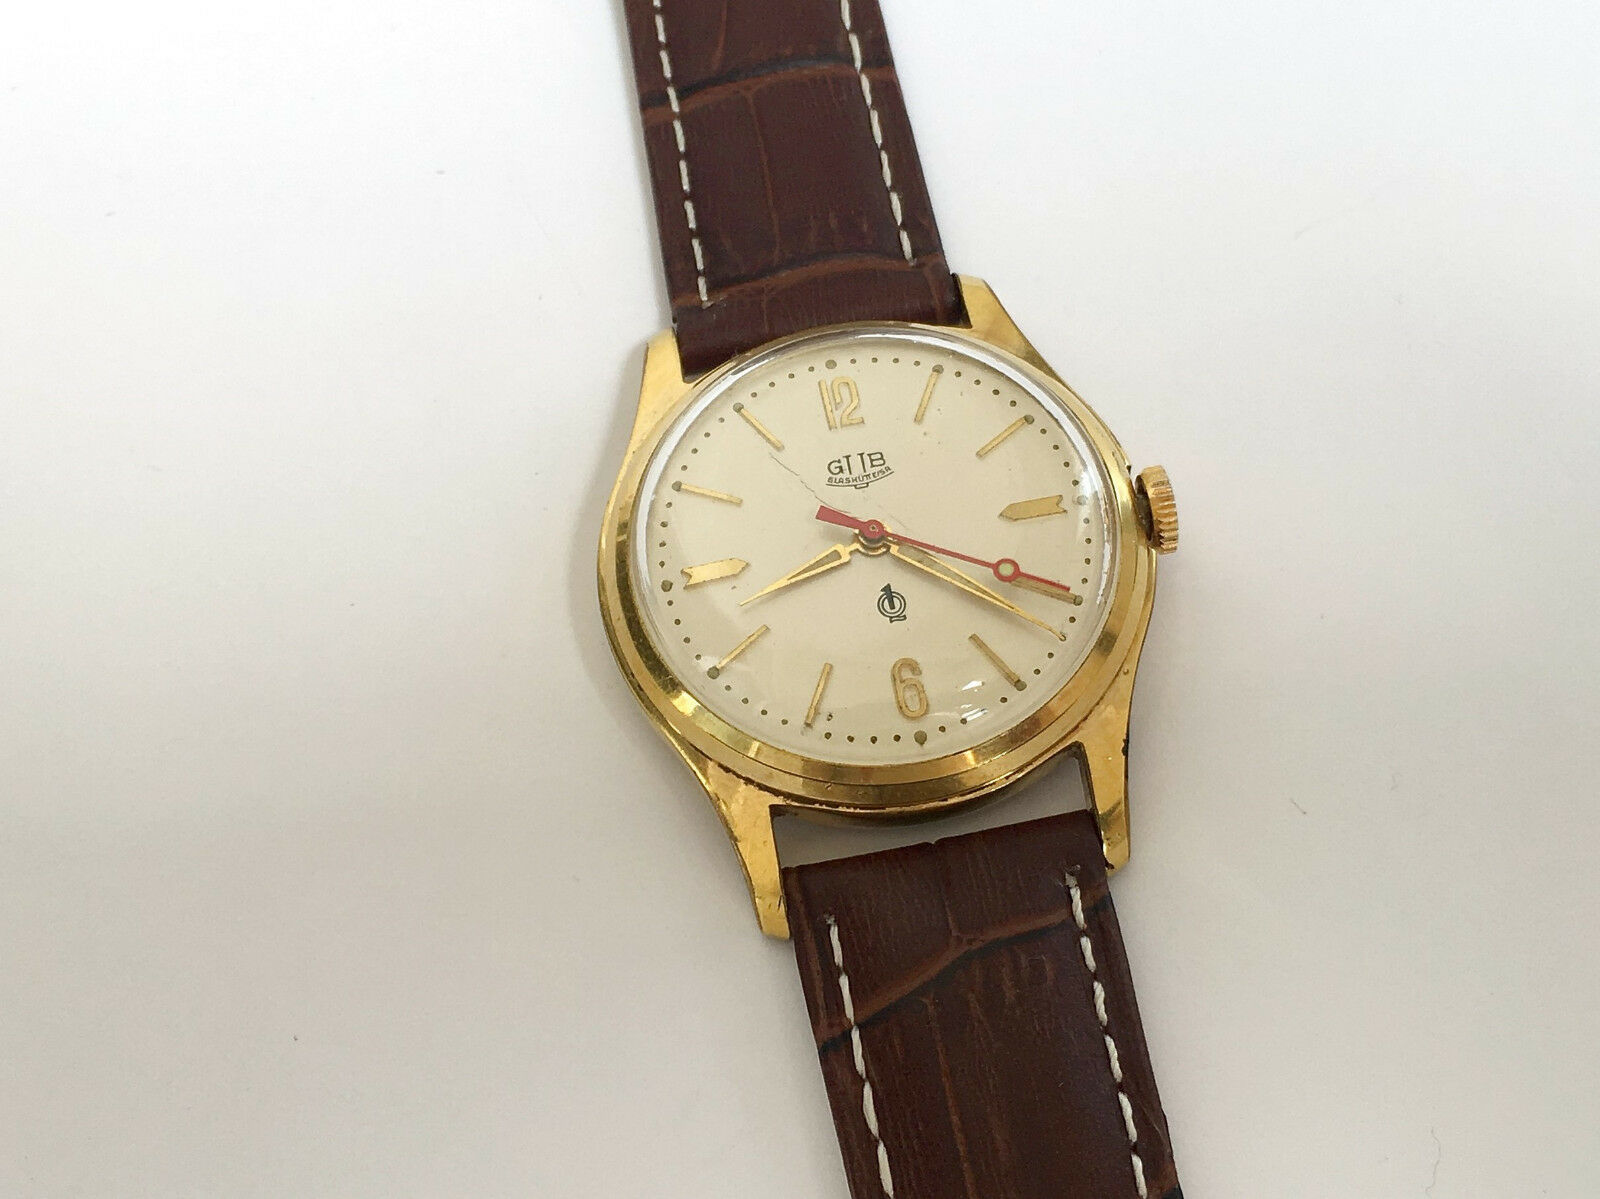 Vintage Rare GLASHUTTE GUB Q1 Chronometre cal. 60.3 Mechanical Germany Watch image 2